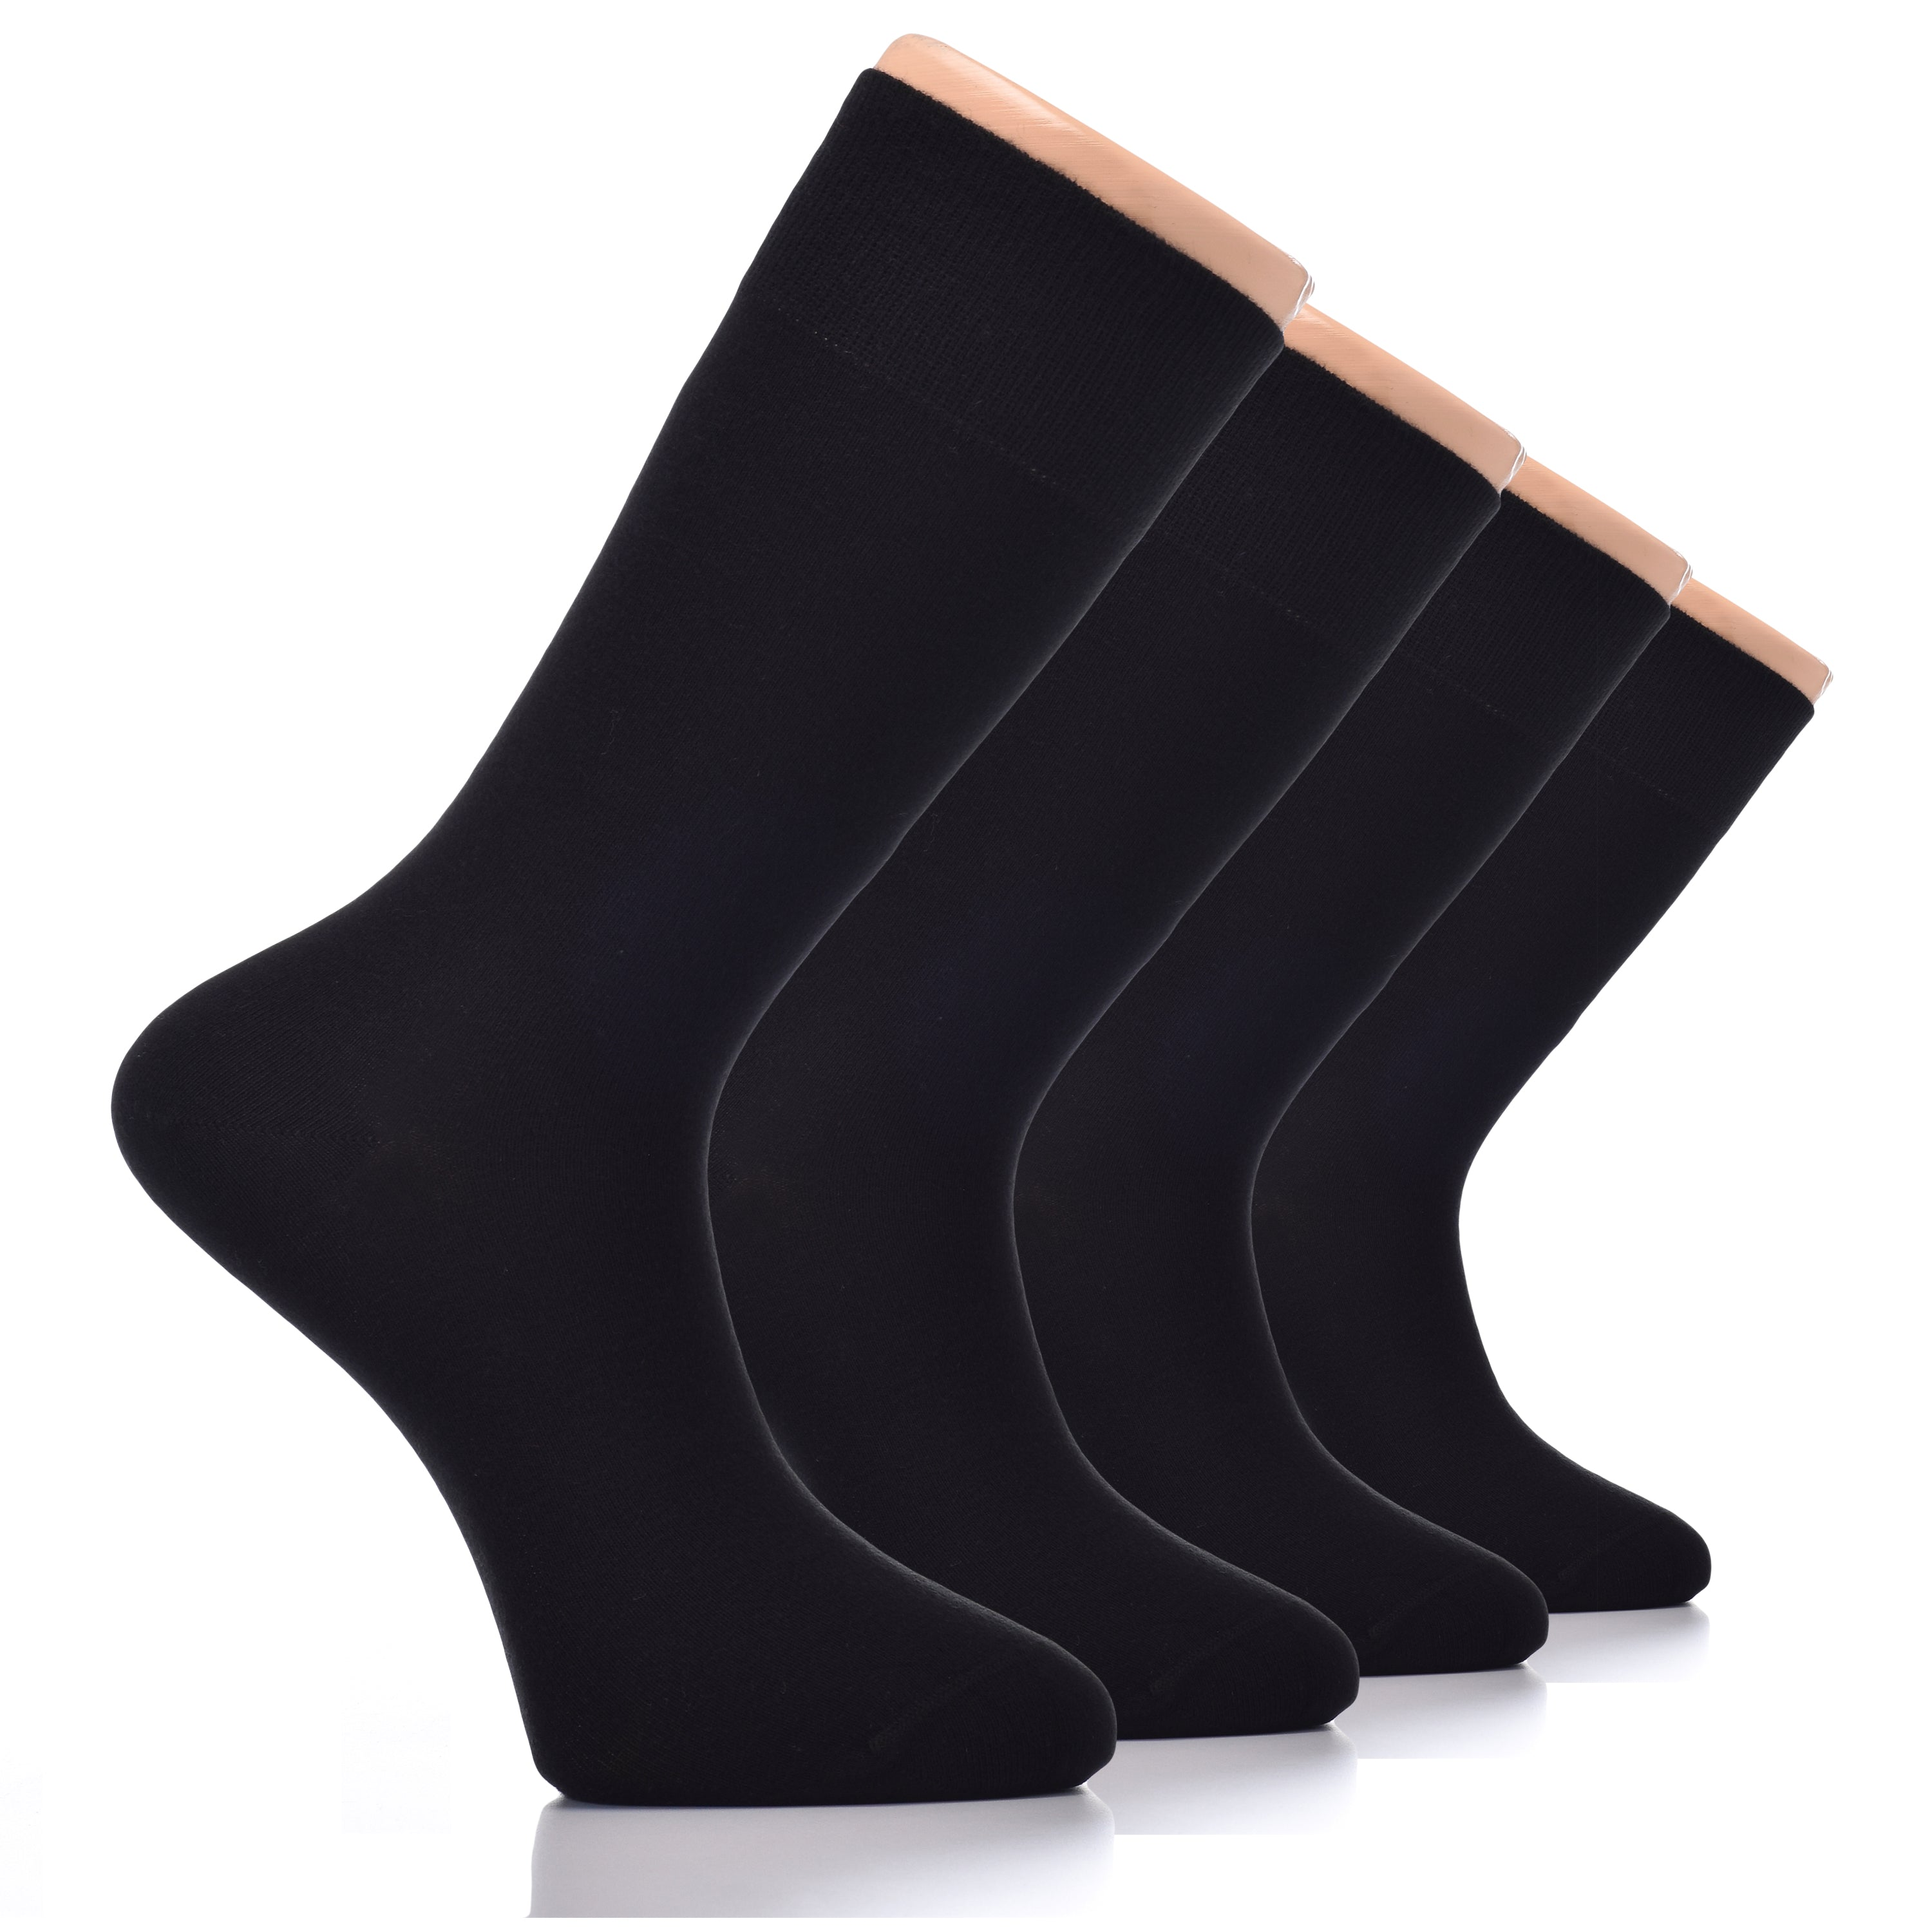 Hugh Ugoli Mens Crew Socks Large Cotton Dress Socks Big, 4 Pairs, Shoe Size: 10-14